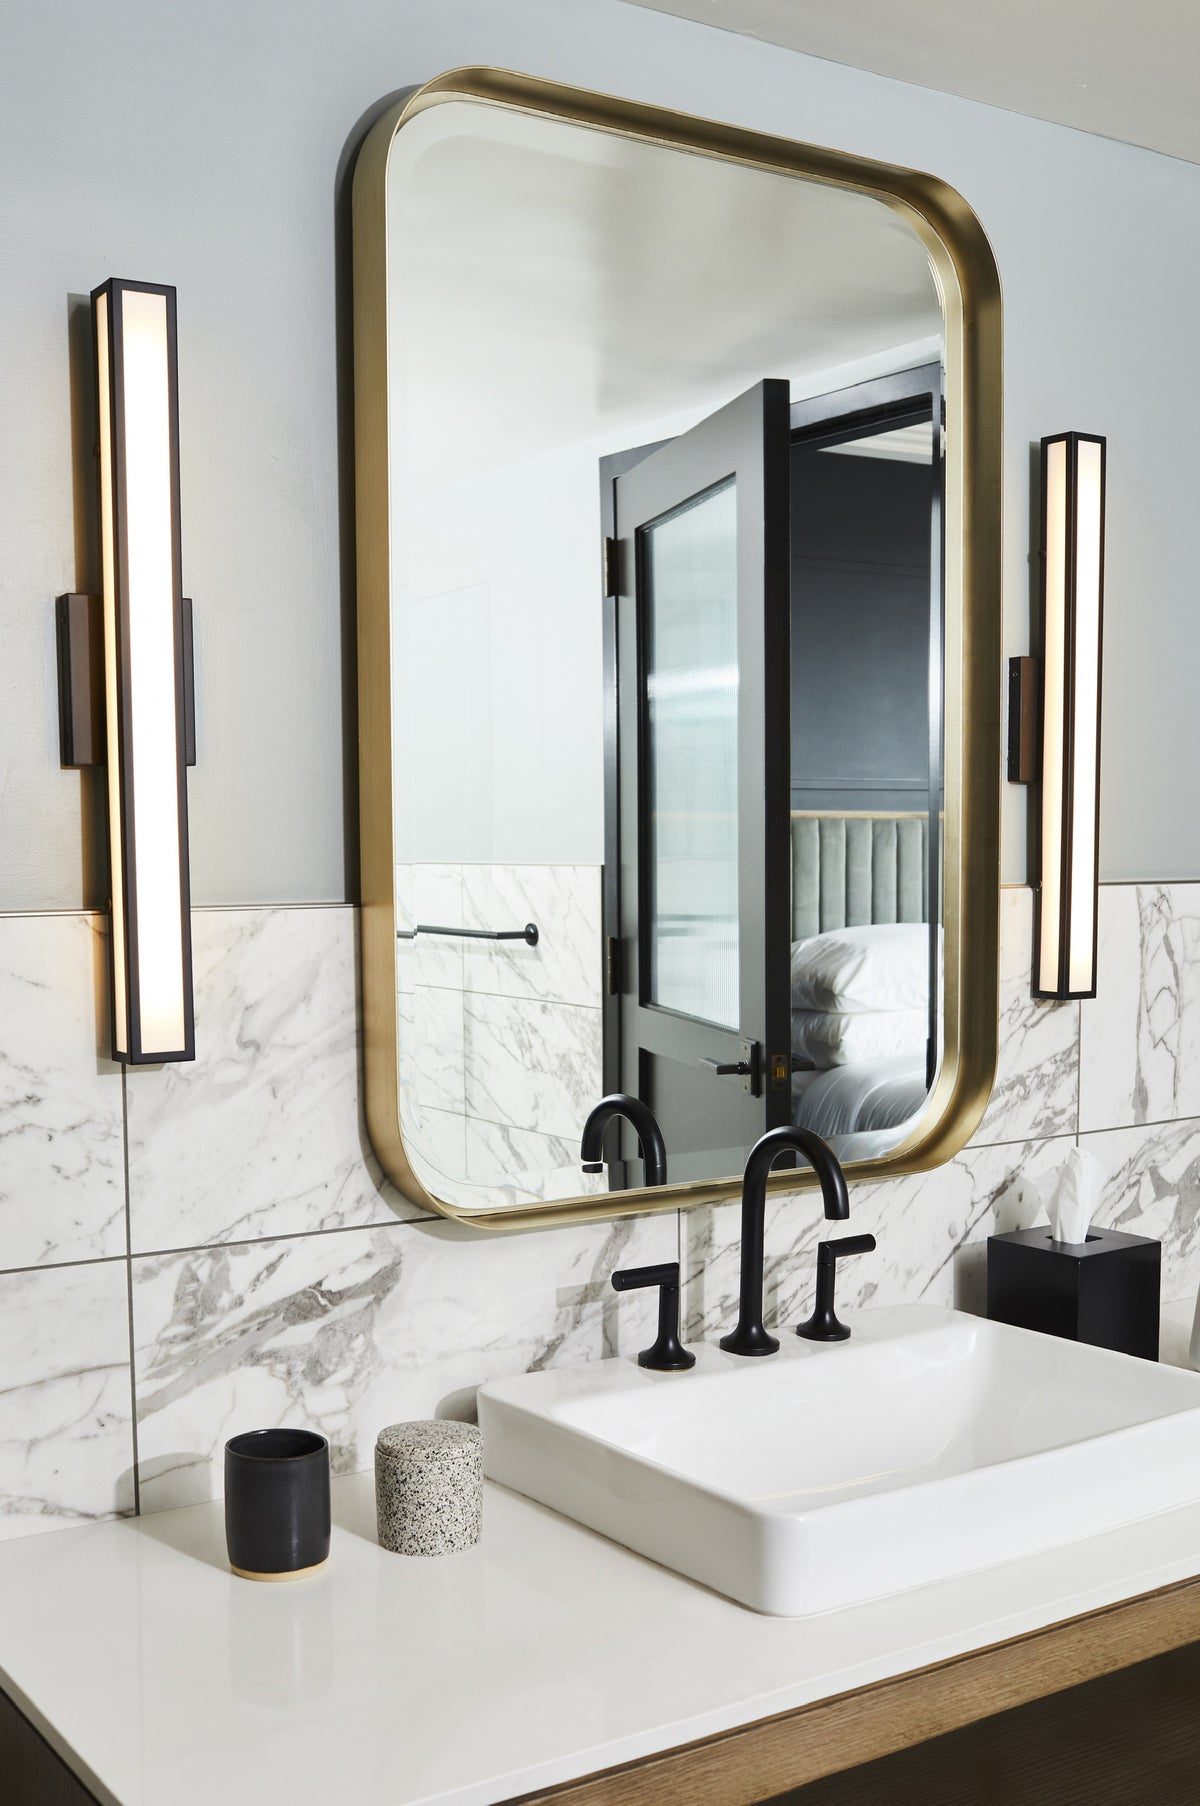 Noelle, Nashville - hotel bathroom with vintage mirror and light fixtures, classic white sink, and marble tiling